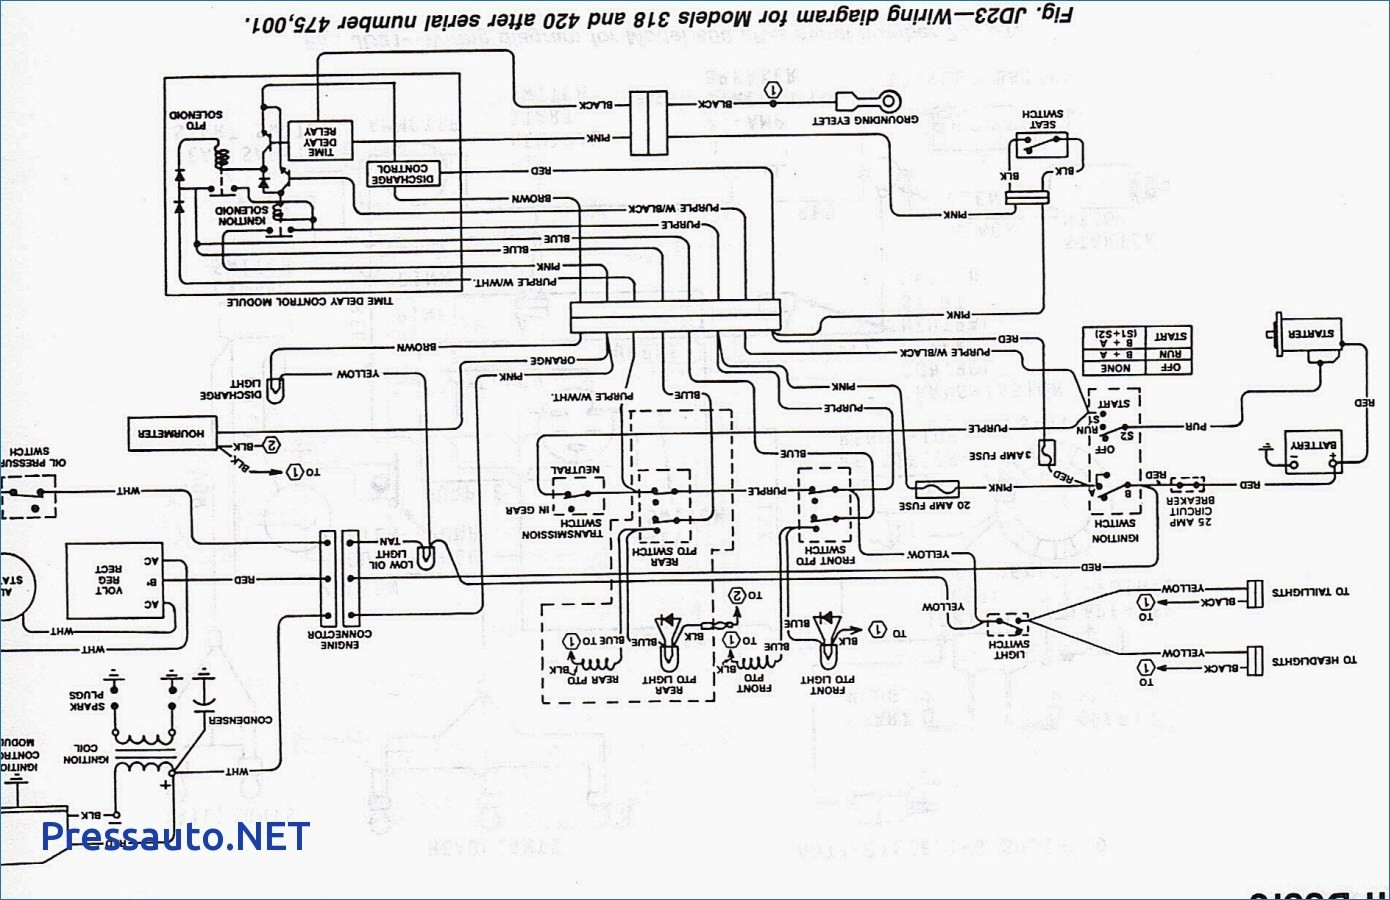 Wiring Diagram Database John Deere 318 Wiring Diagram Wiring Diagram